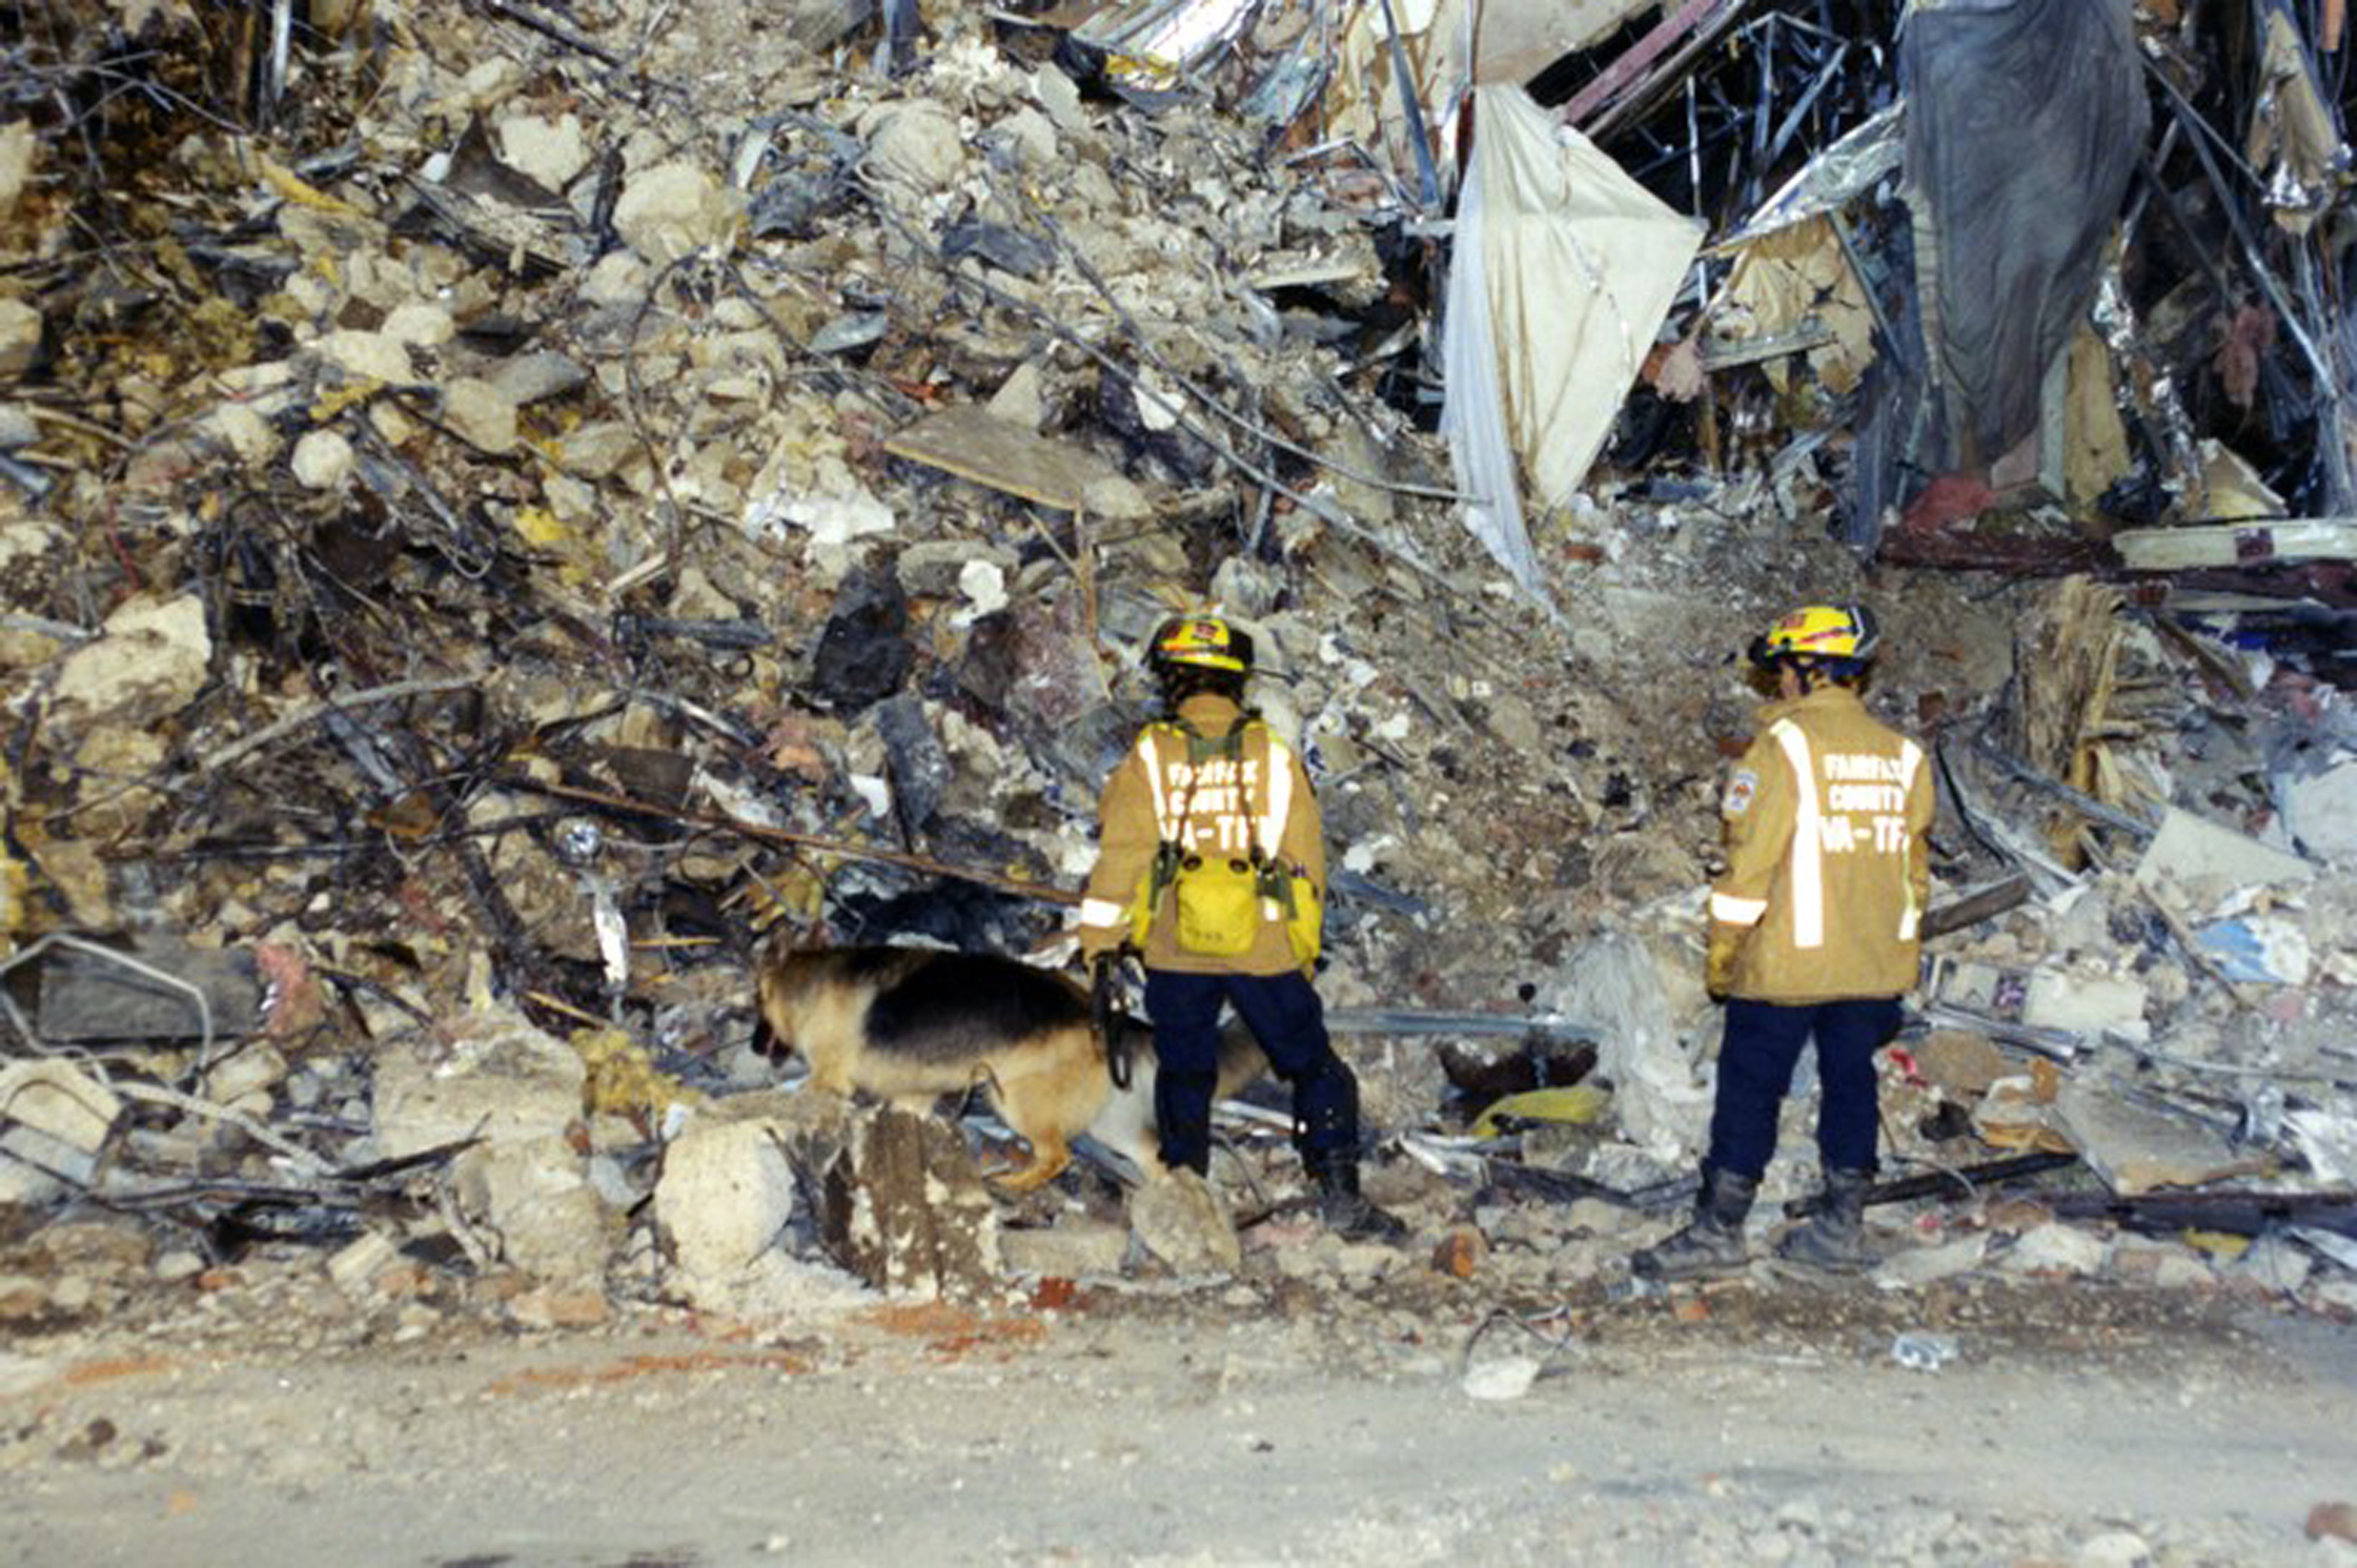 Members of the emergency services search with a sniffer dog after the hijacked American Airlines Flight 77 crashed into the Pentagon in Arlington County, Virginia, on Sept. 11, 2001.